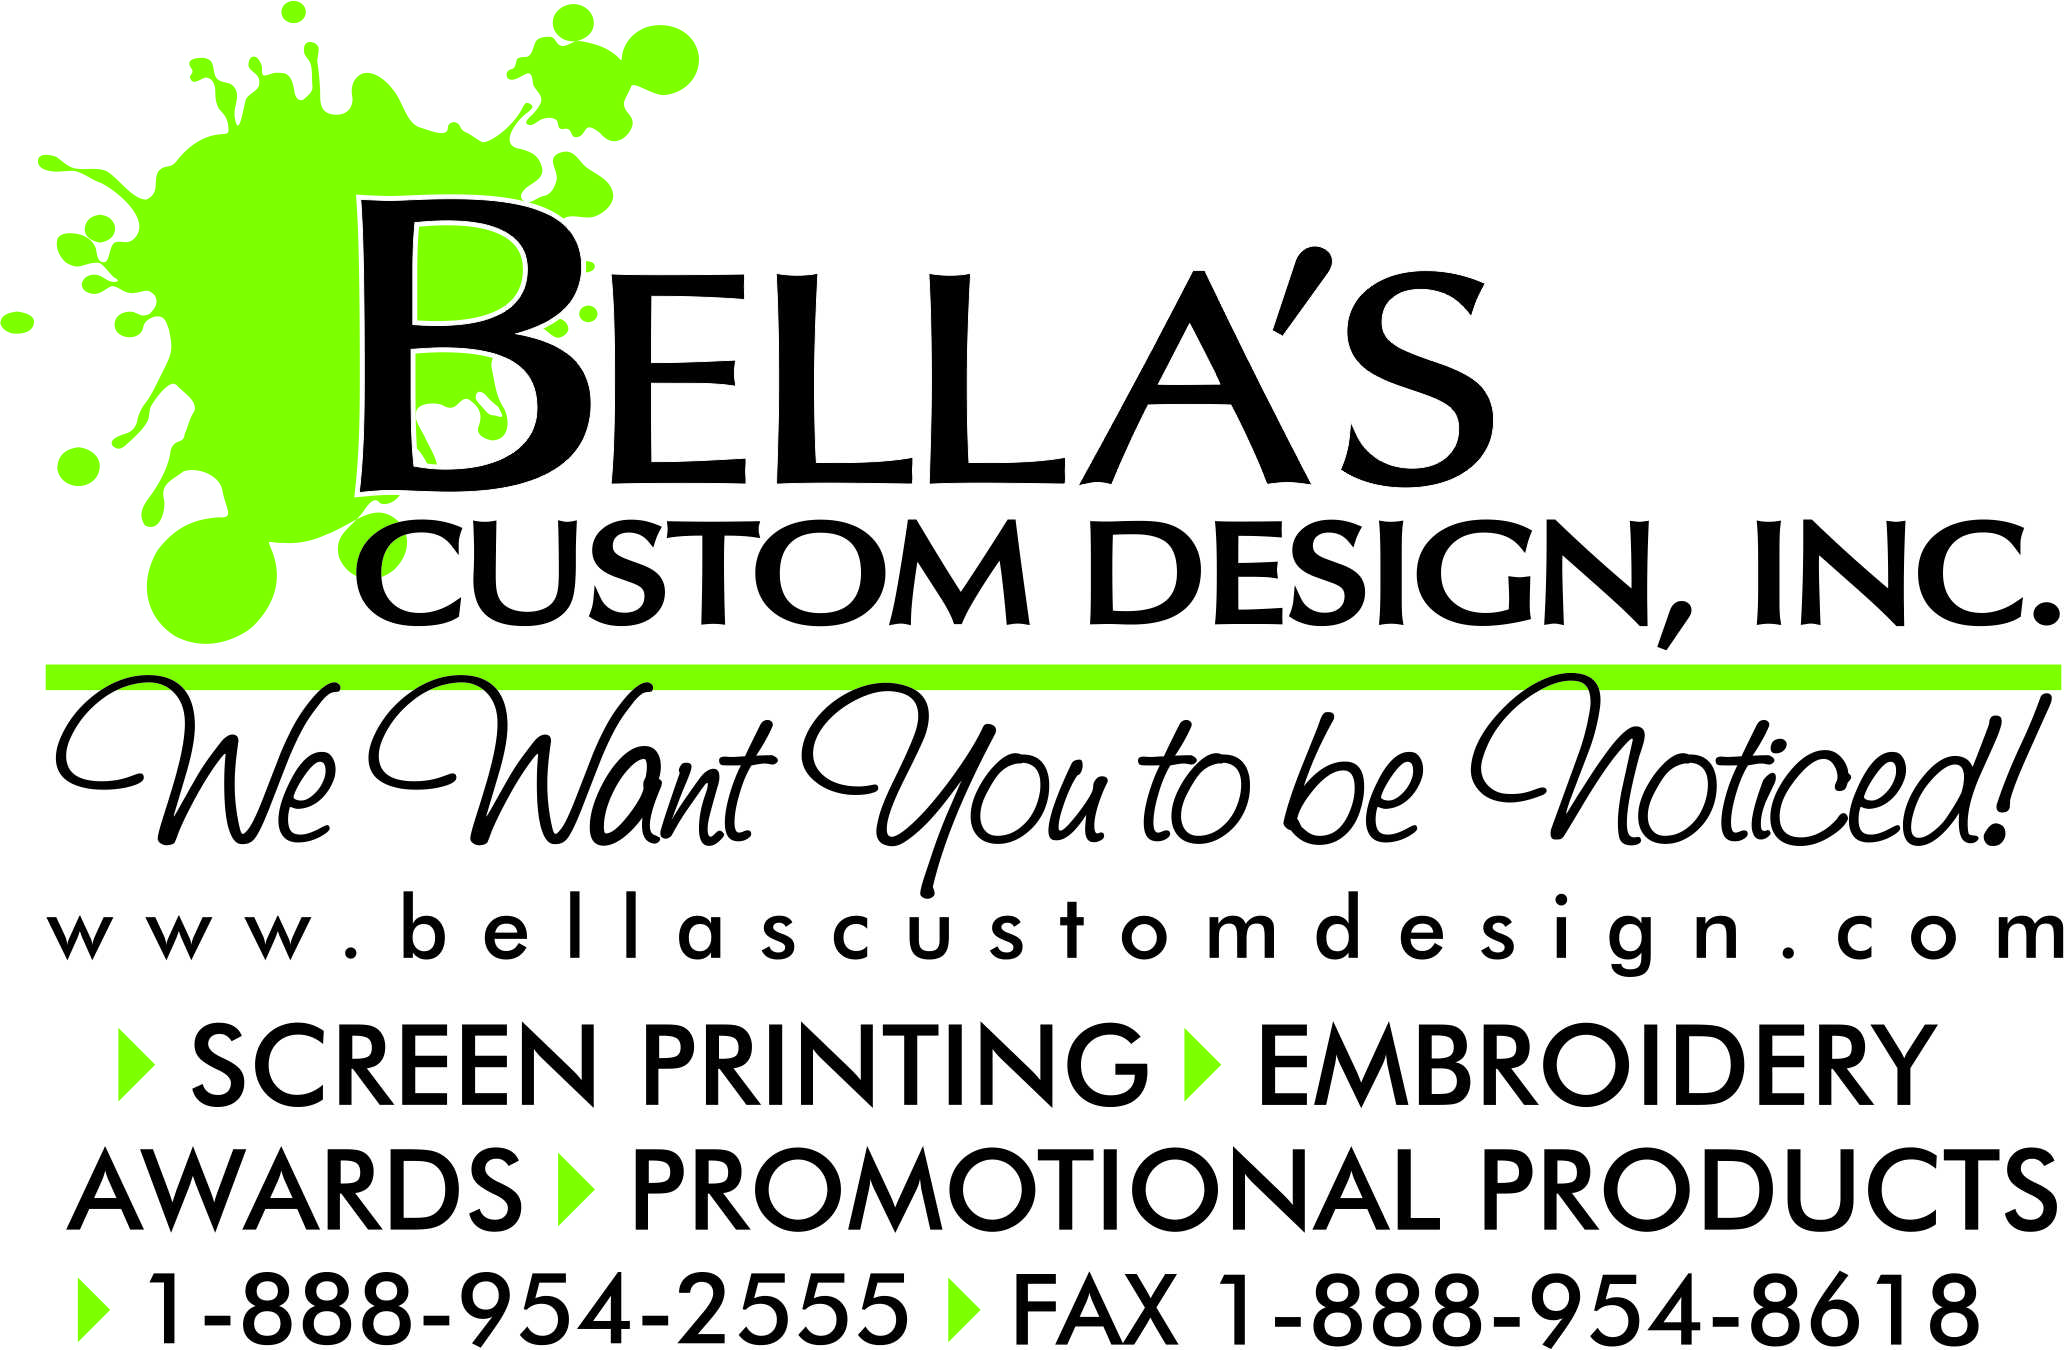 Bellas Custom Design Inc in Menasha, WI. Distributor of promotional products.